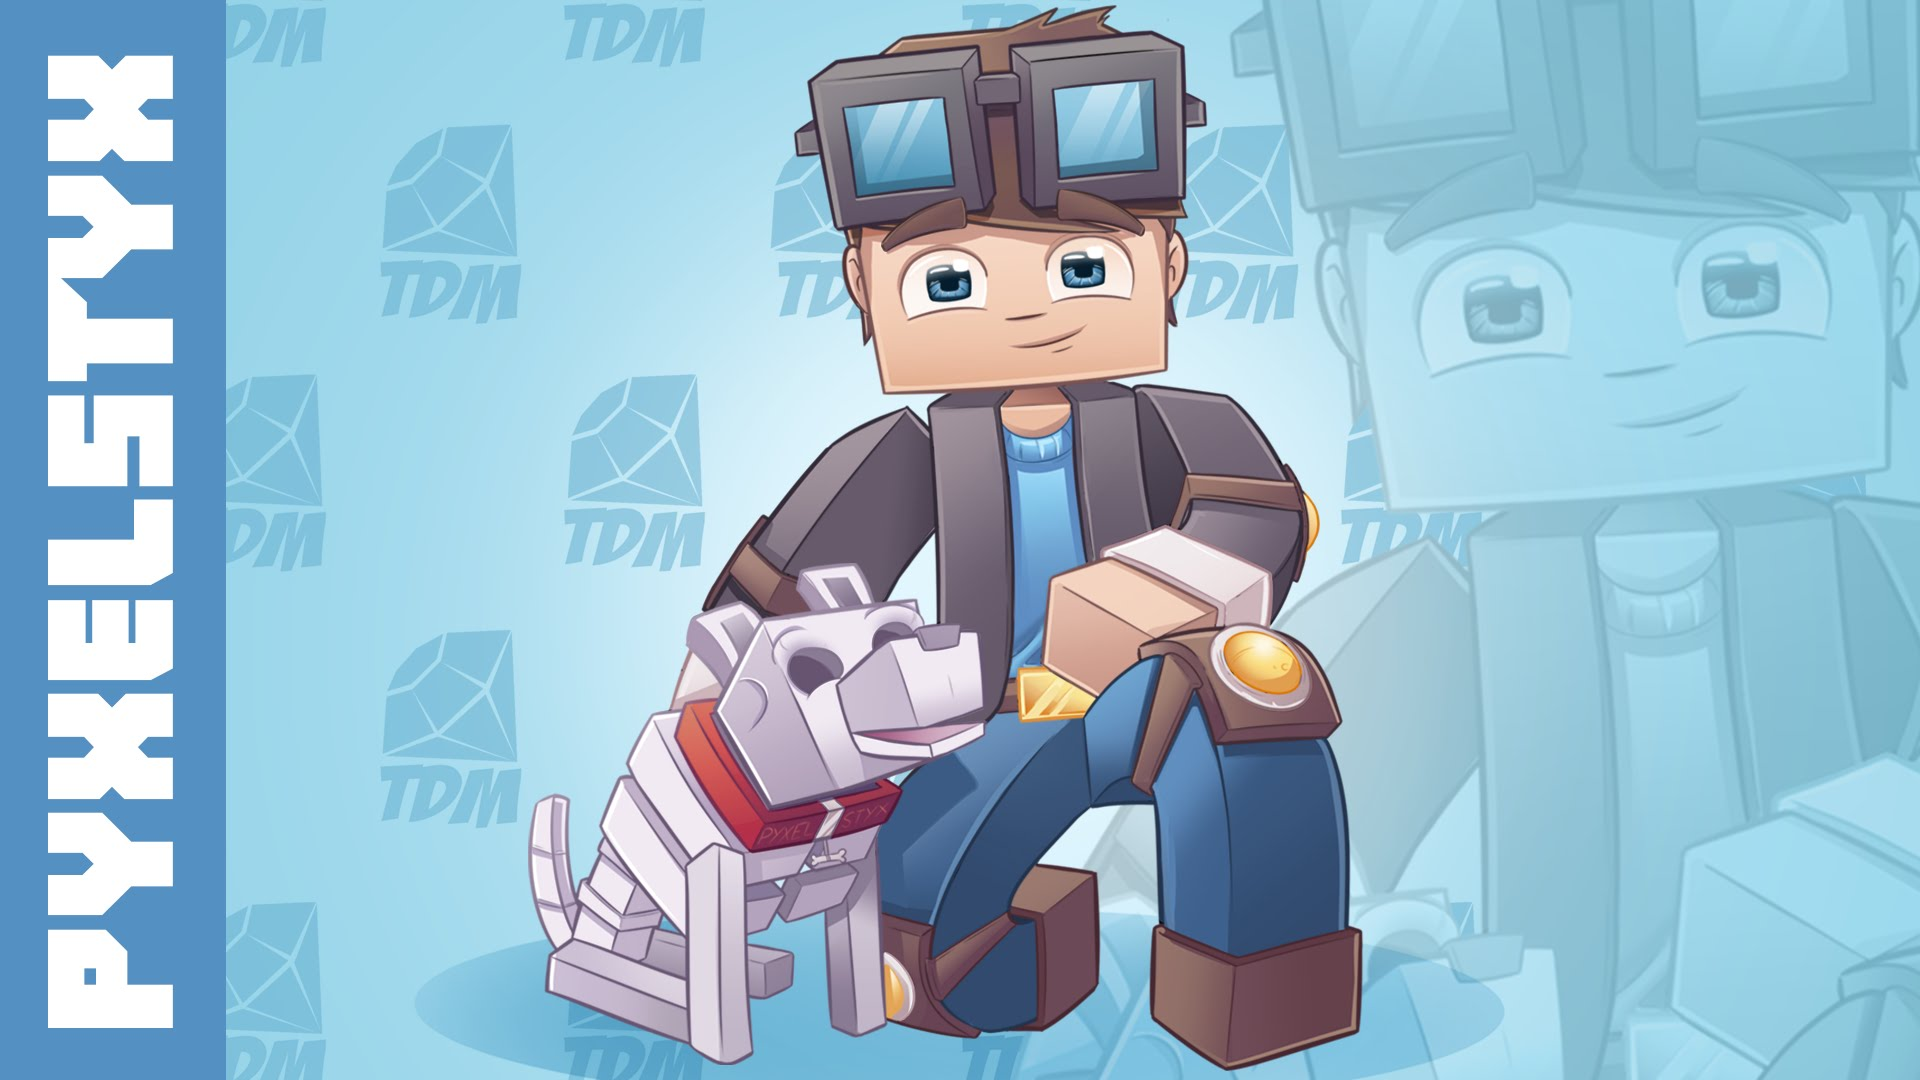 Minecraft SpeedART   TheDiamondMinecart Lunchbox 1920x1080